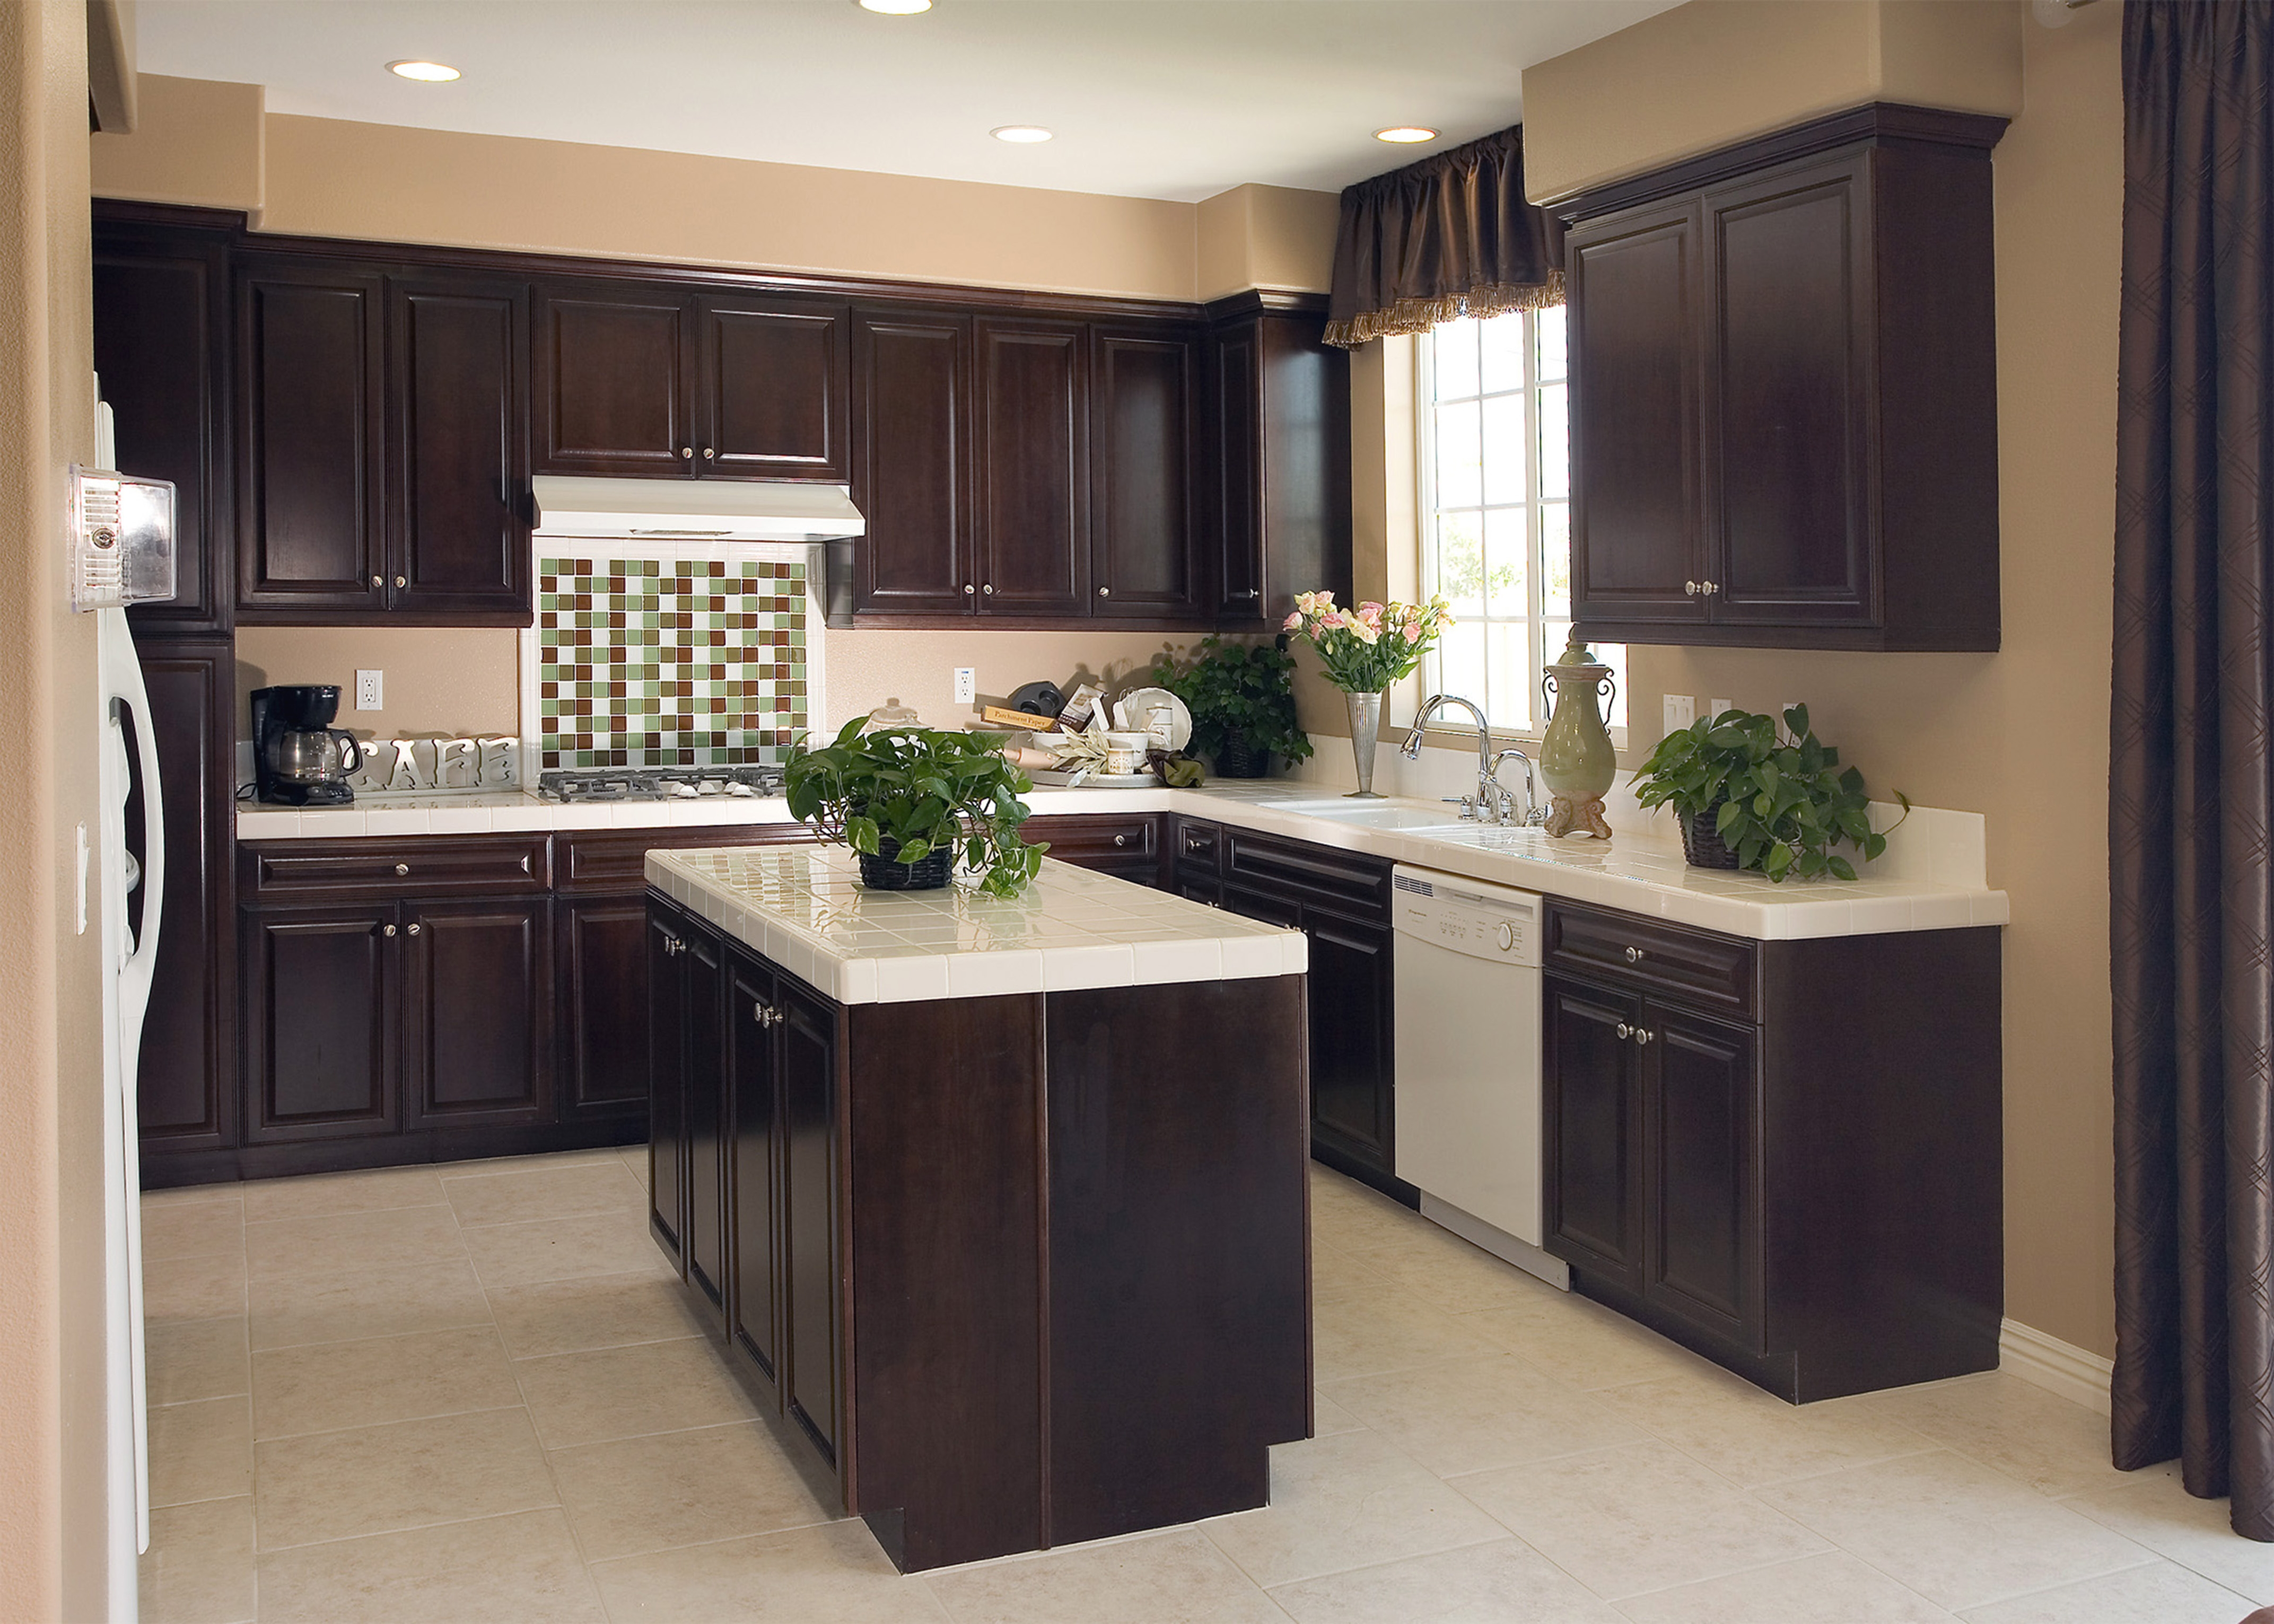 Decorating A Kitchen With Dark Cabinets4288 X 3063